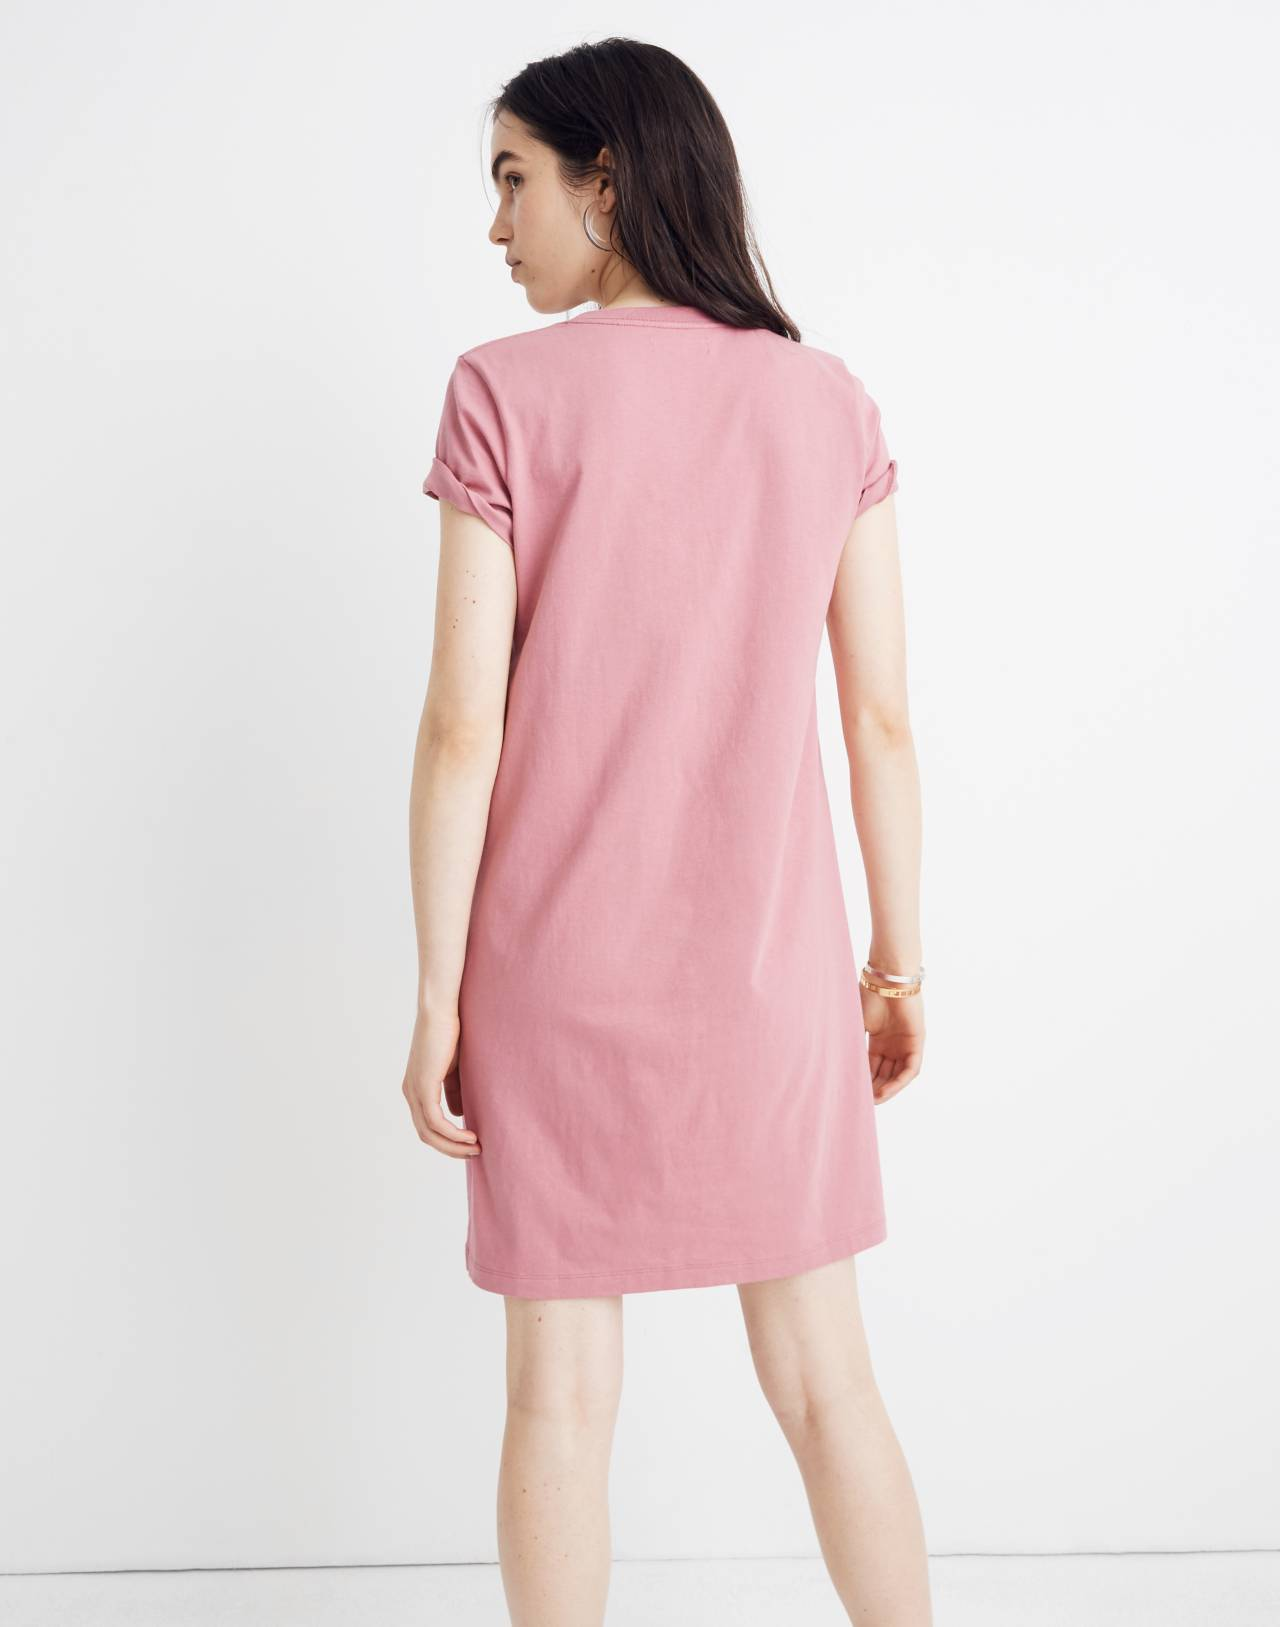 Tee Dress in autumn berry image 3